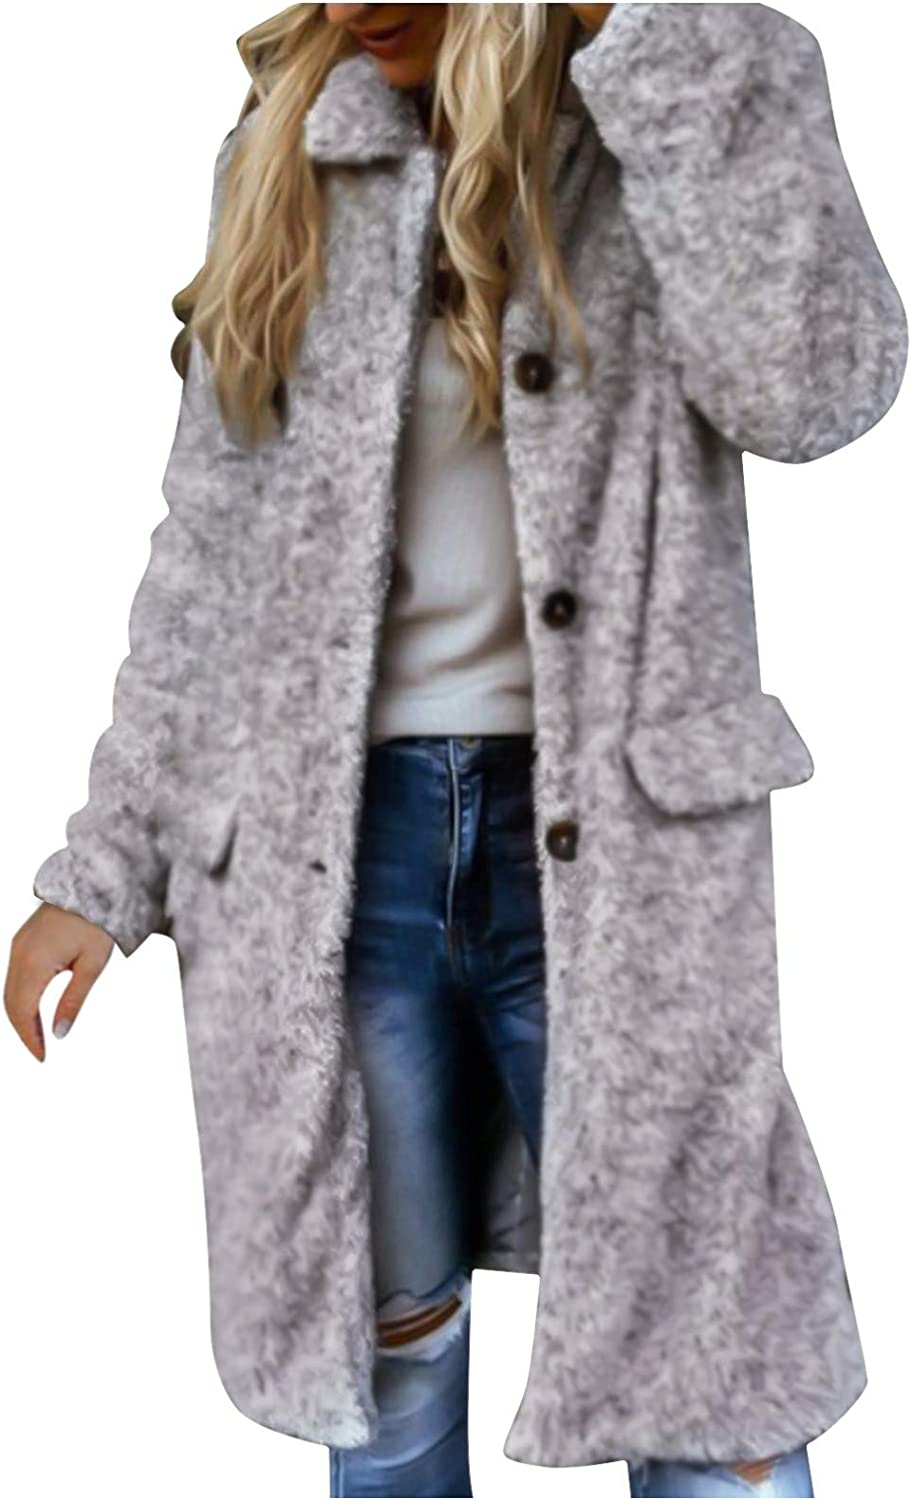 Smileyth Women's Plus Size Cardigan Jacket Loose Lapel Long Sleeve Solid Color Casual Pockets Faux Fur Fuzzy Winter Outerwear Long Coat